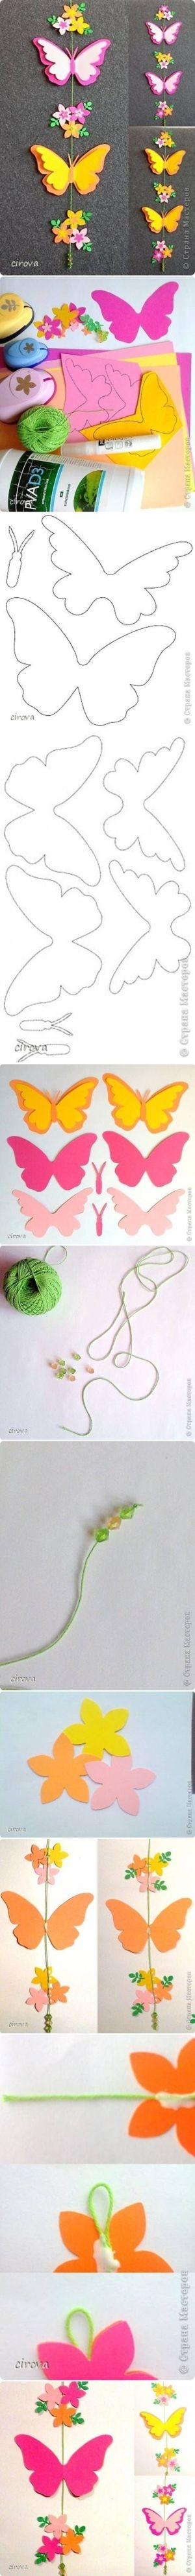 DIY Paper Butterfly Mobile by EstTera